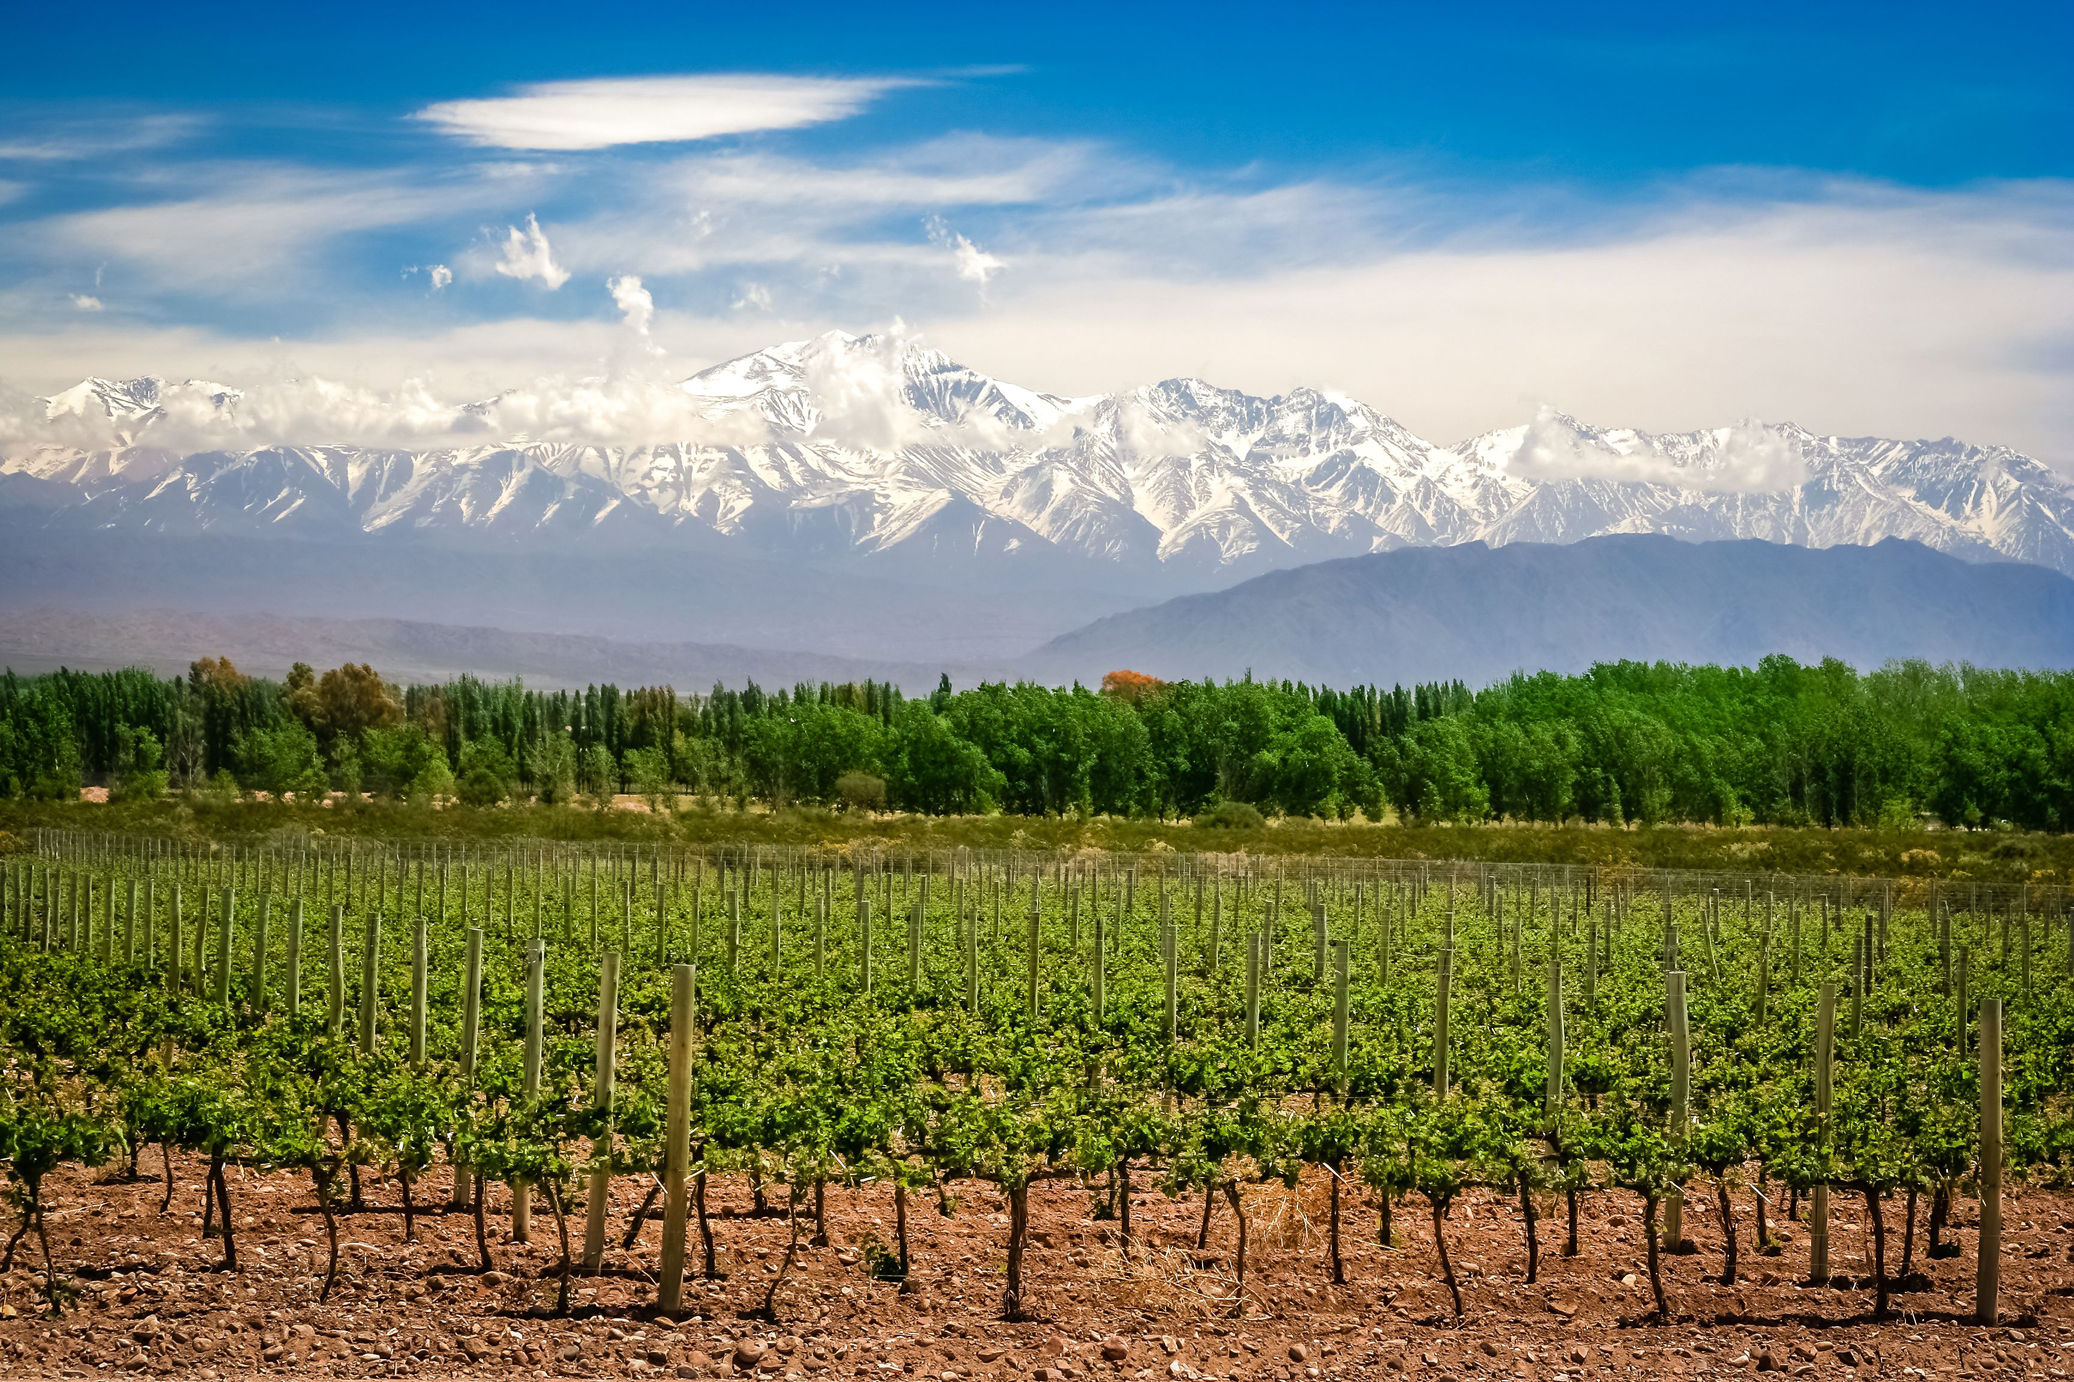 Vineyards in Argentina with Andes in the background (Thinkstock/PA)